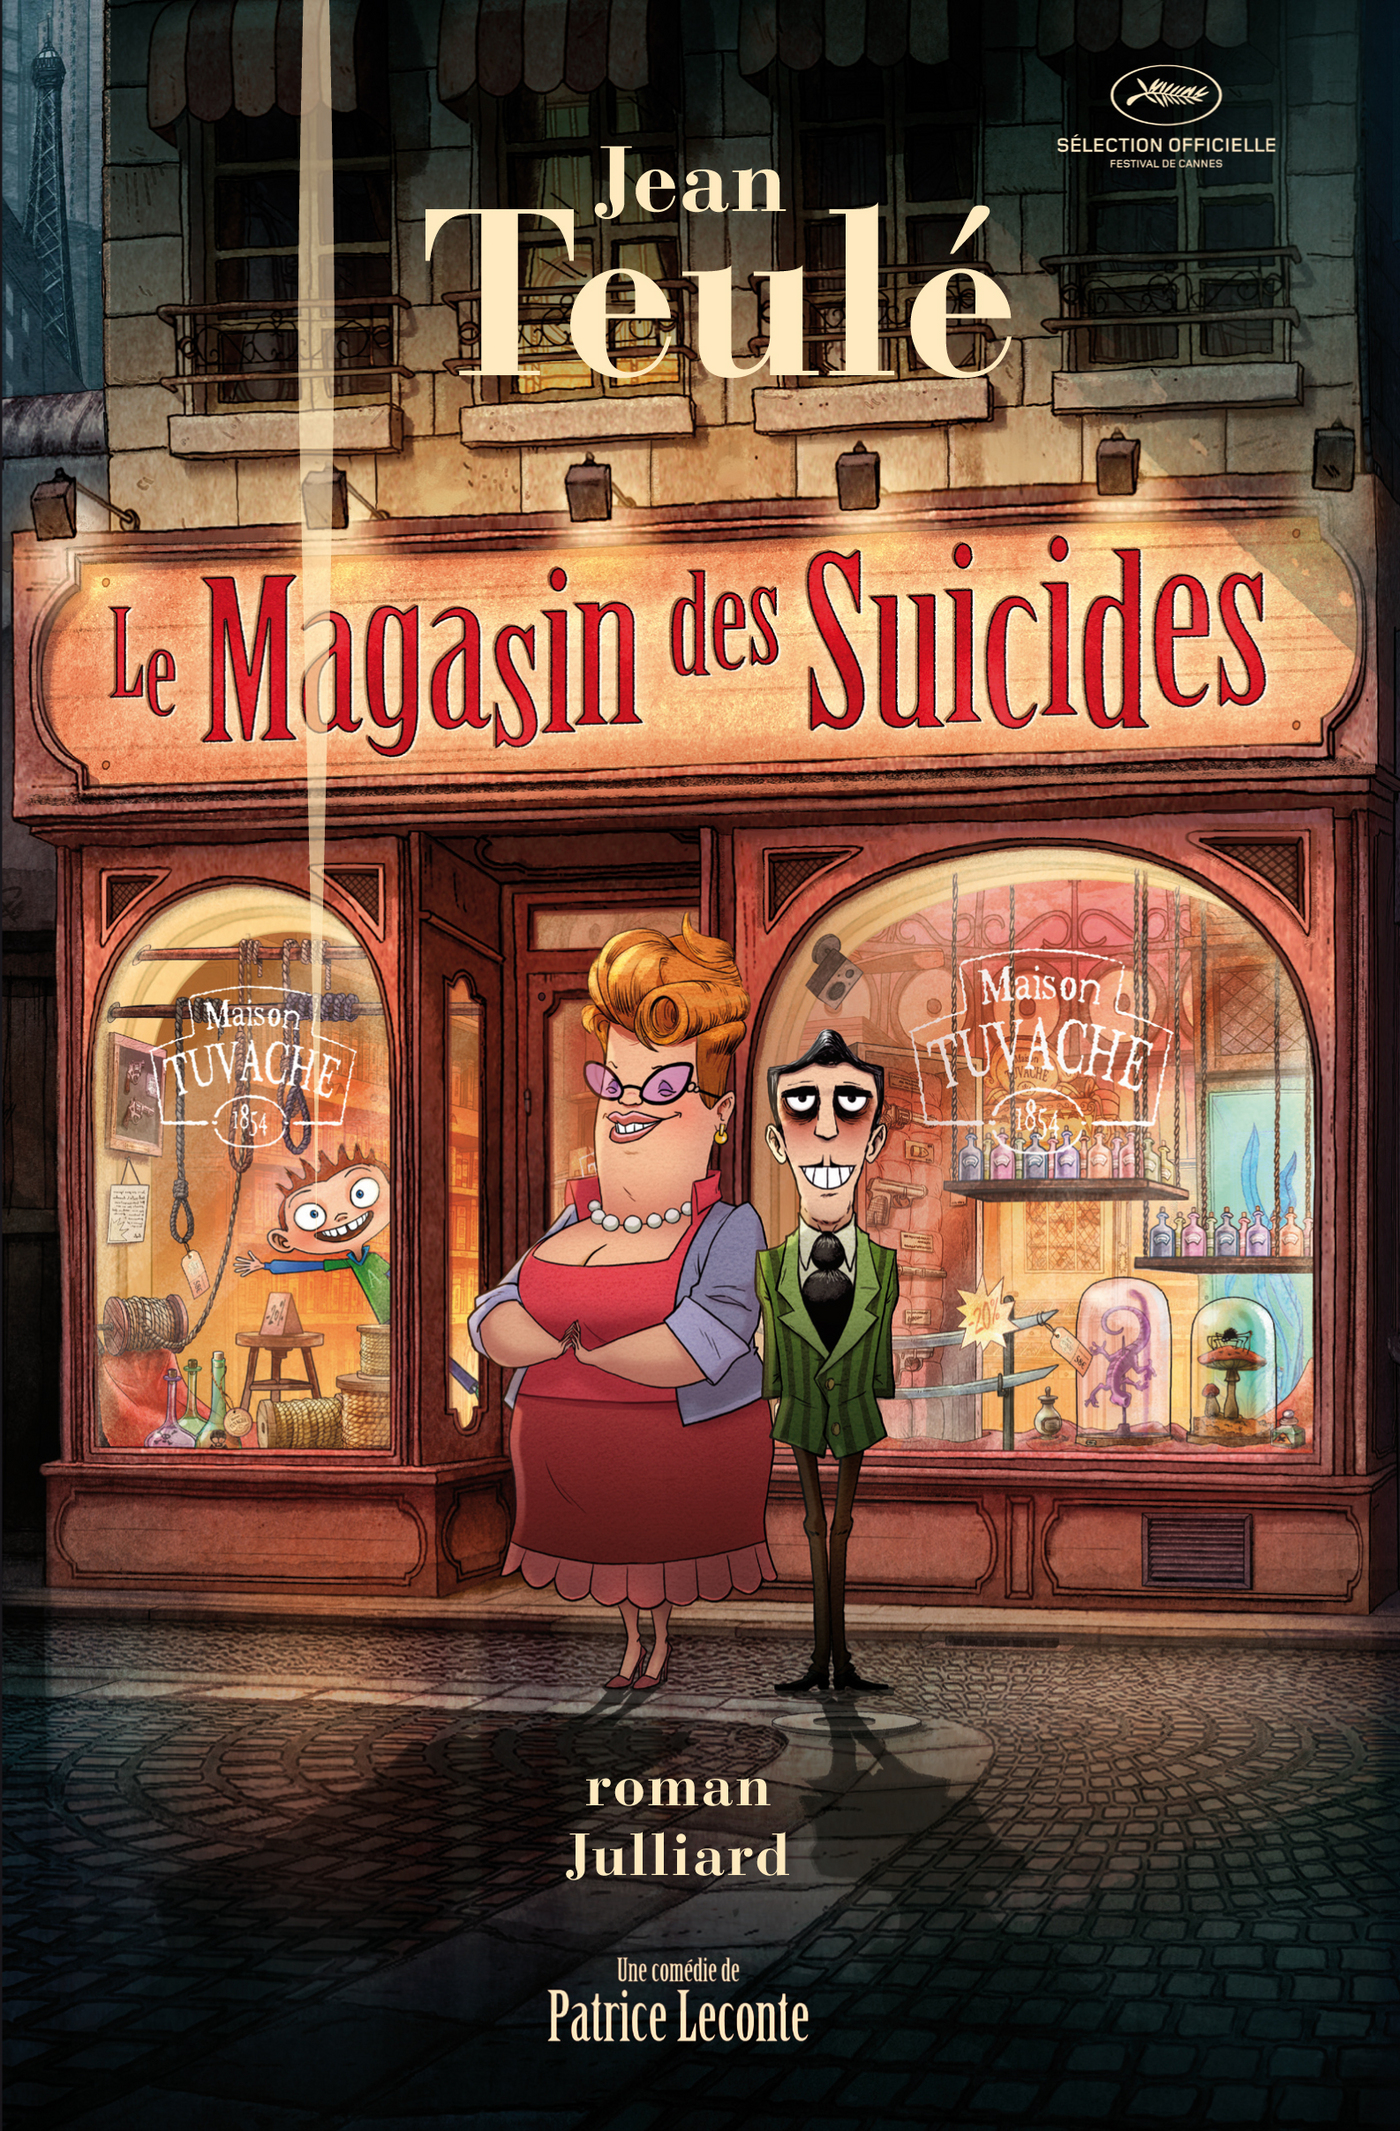 Le Magasin des suicides